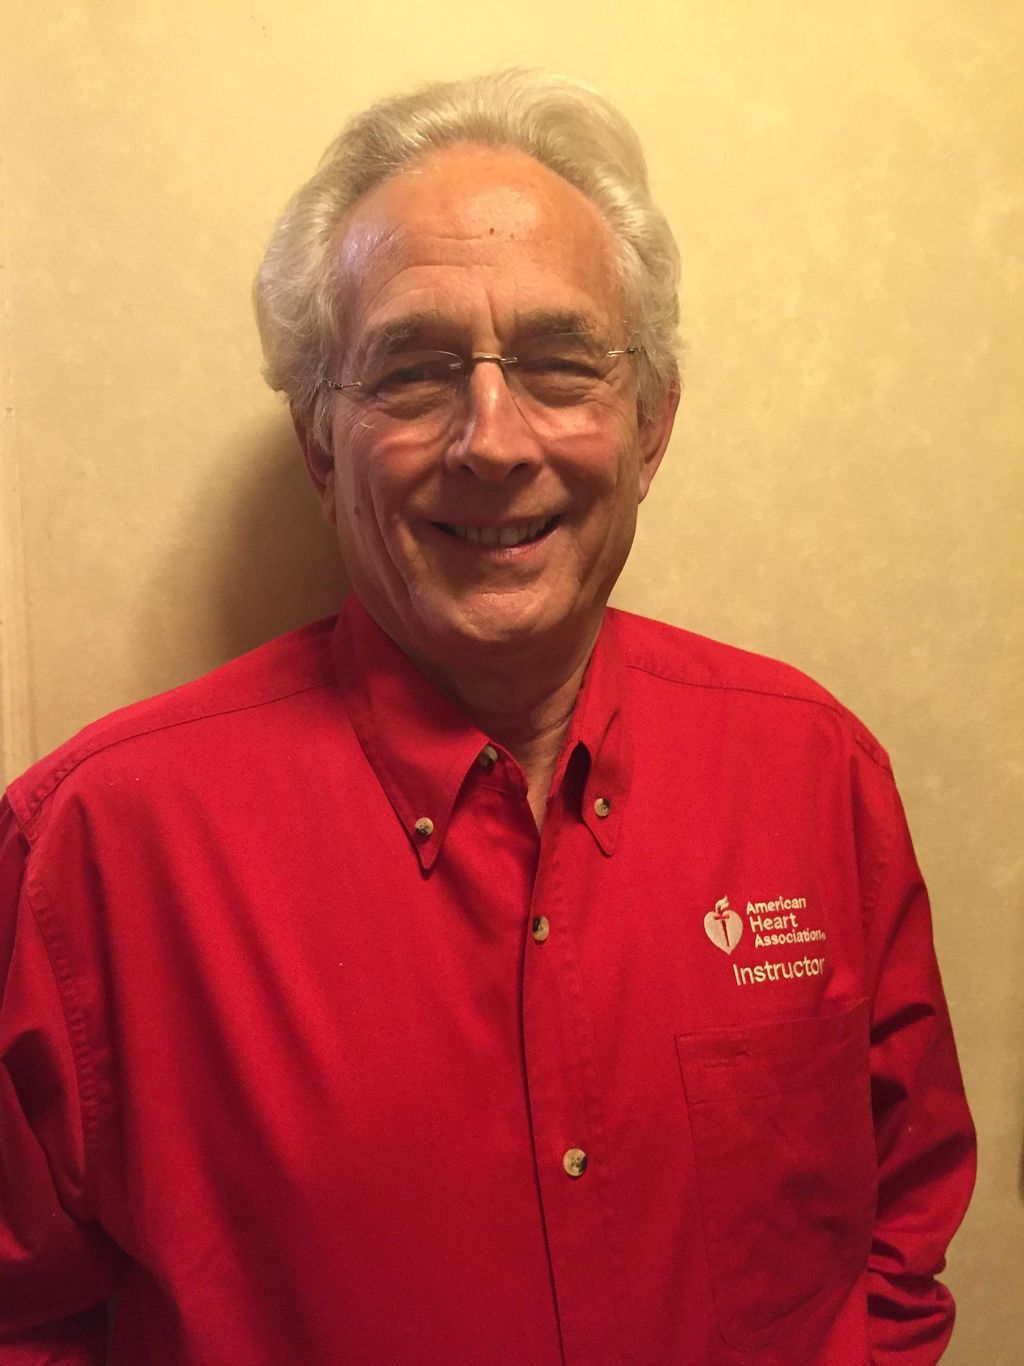 Joel Lustberg, CPR and First Aid Instruction